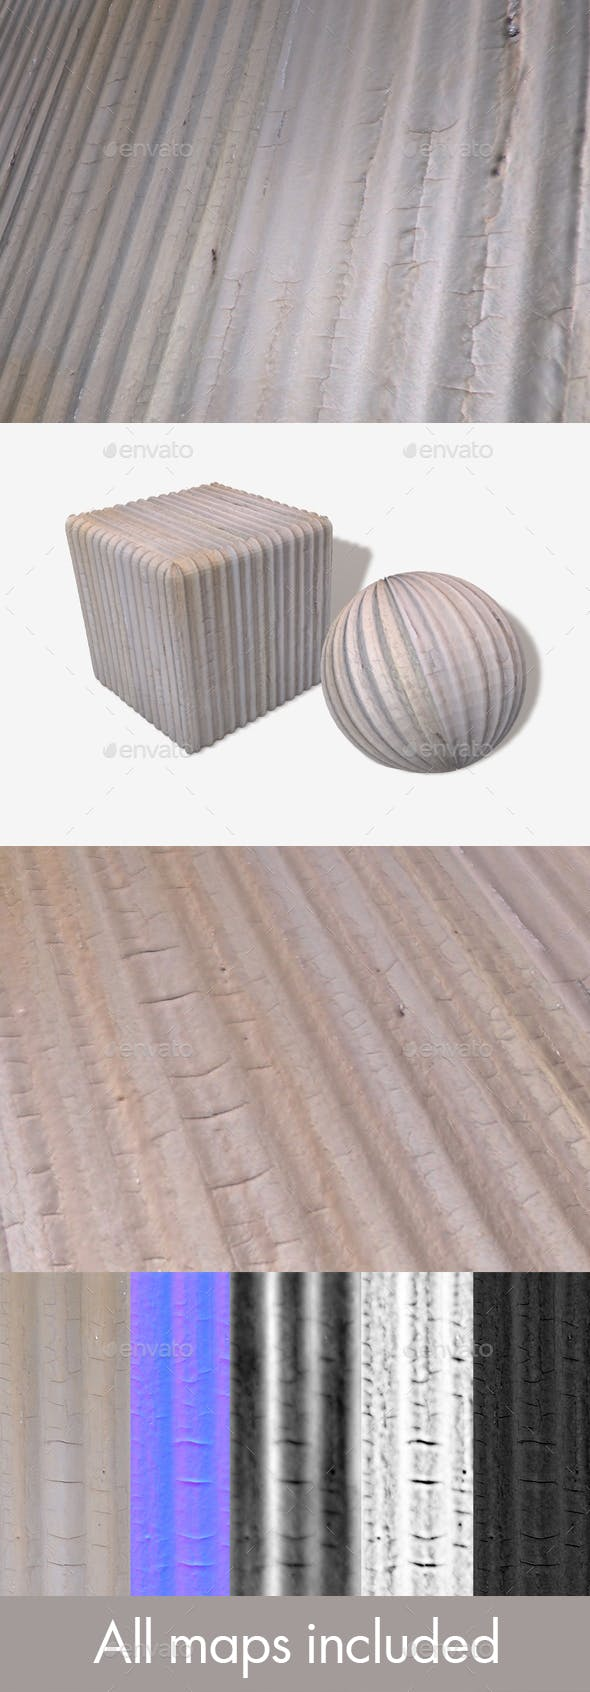 Painted Corrugated Iron Seamless Texture - 3DOcean Item for Sale